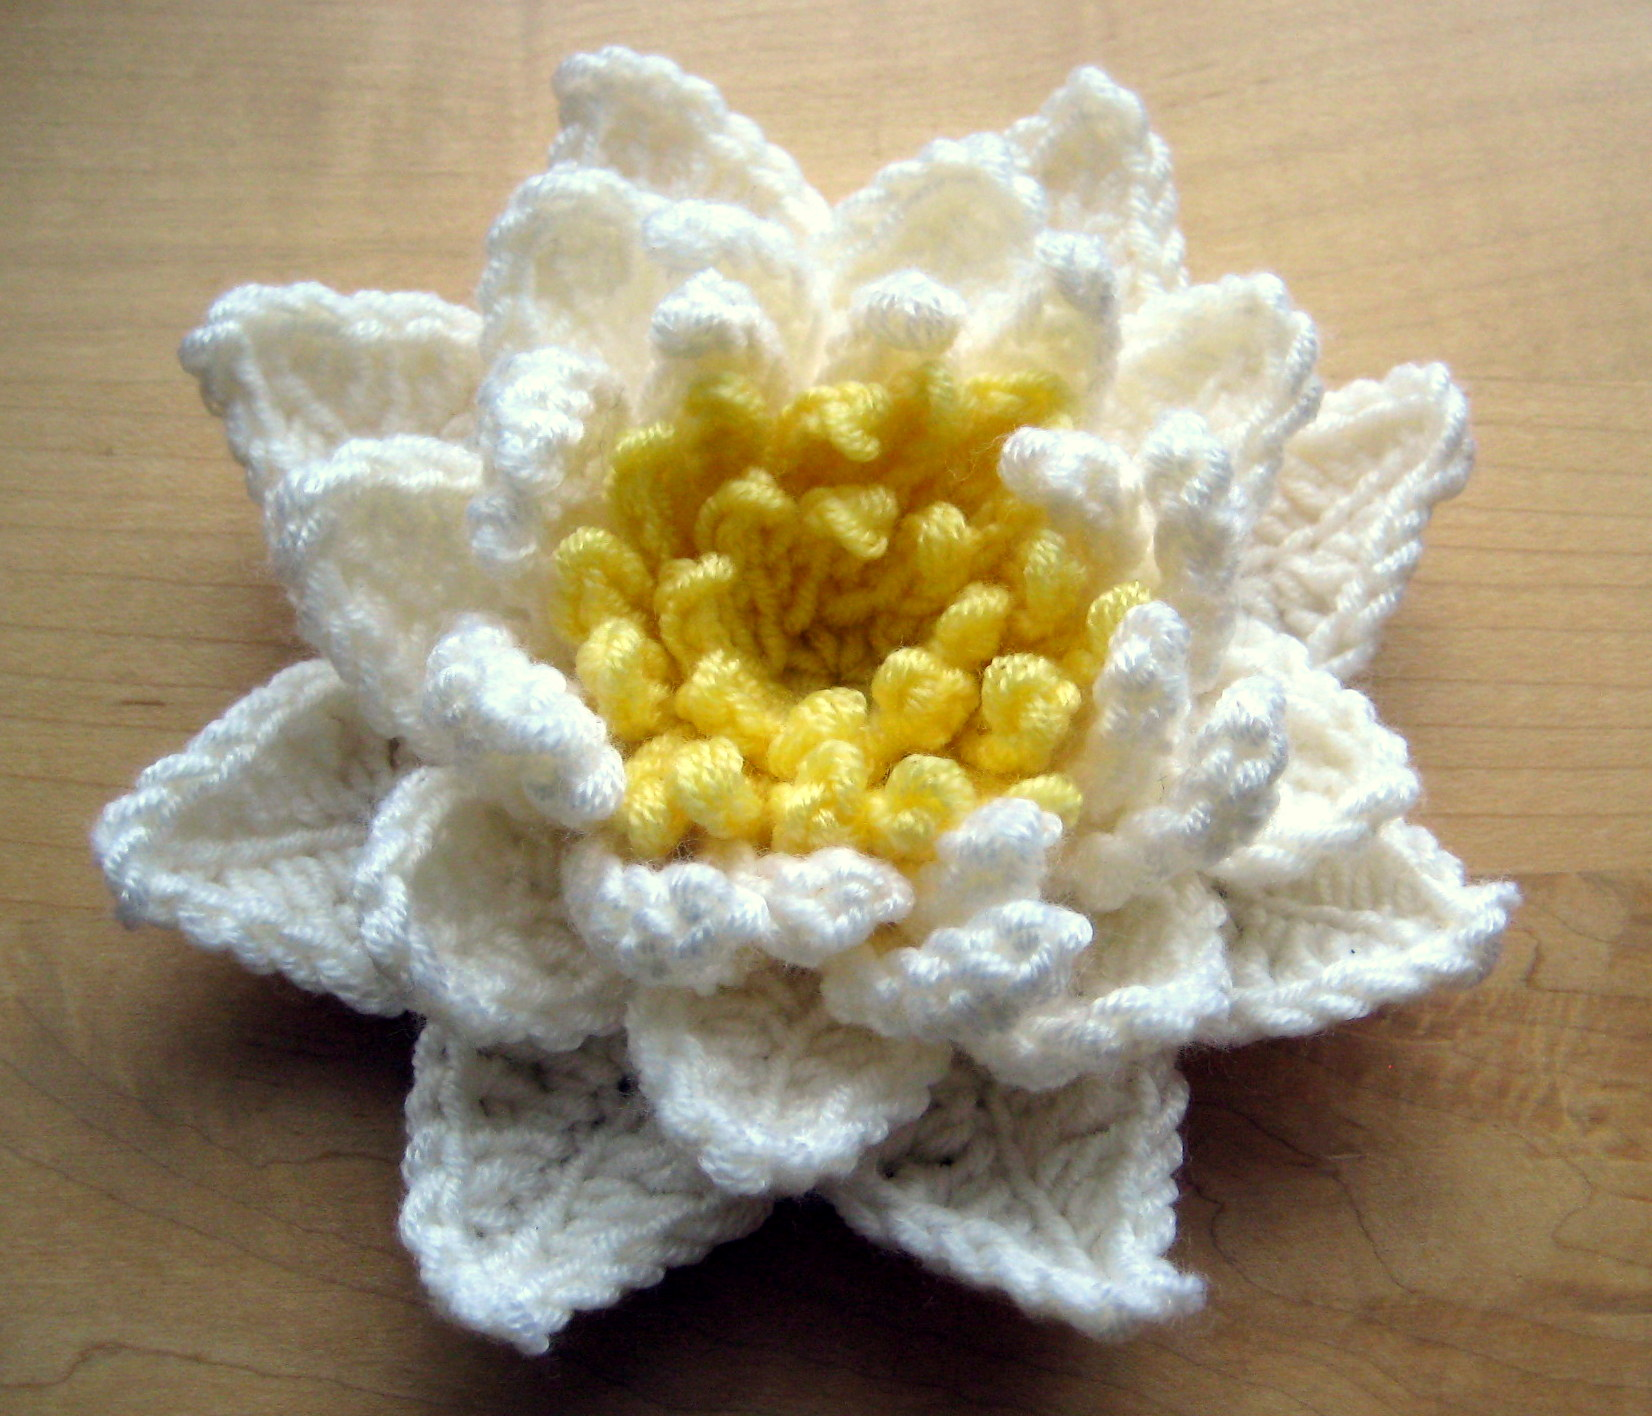 Water lily make my day creative water lily crochet pattern izmirmasajfo Gallery